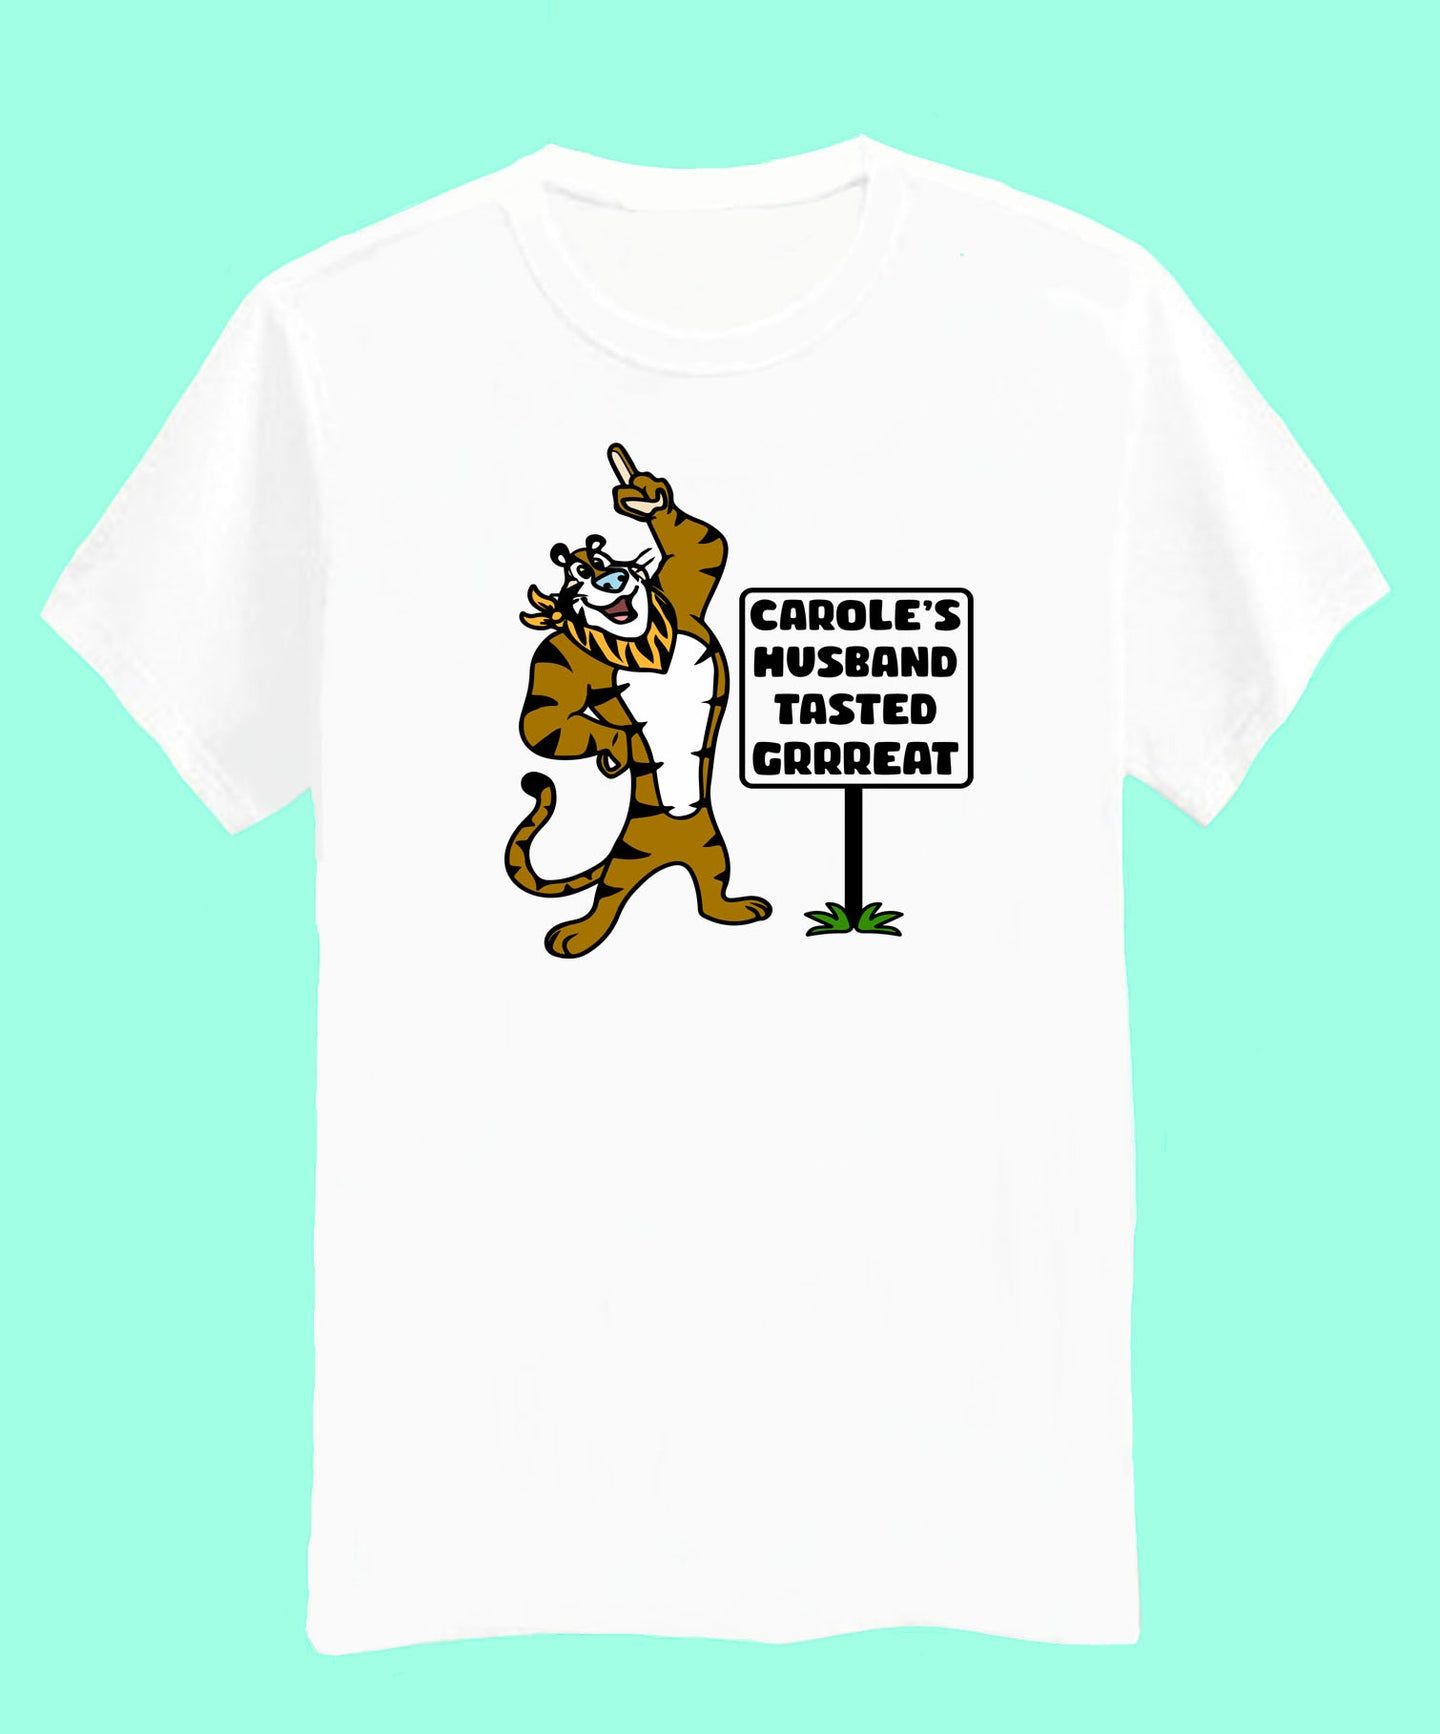 Carole's Husband Tasted Great - Tiger King - Unisex tshirts